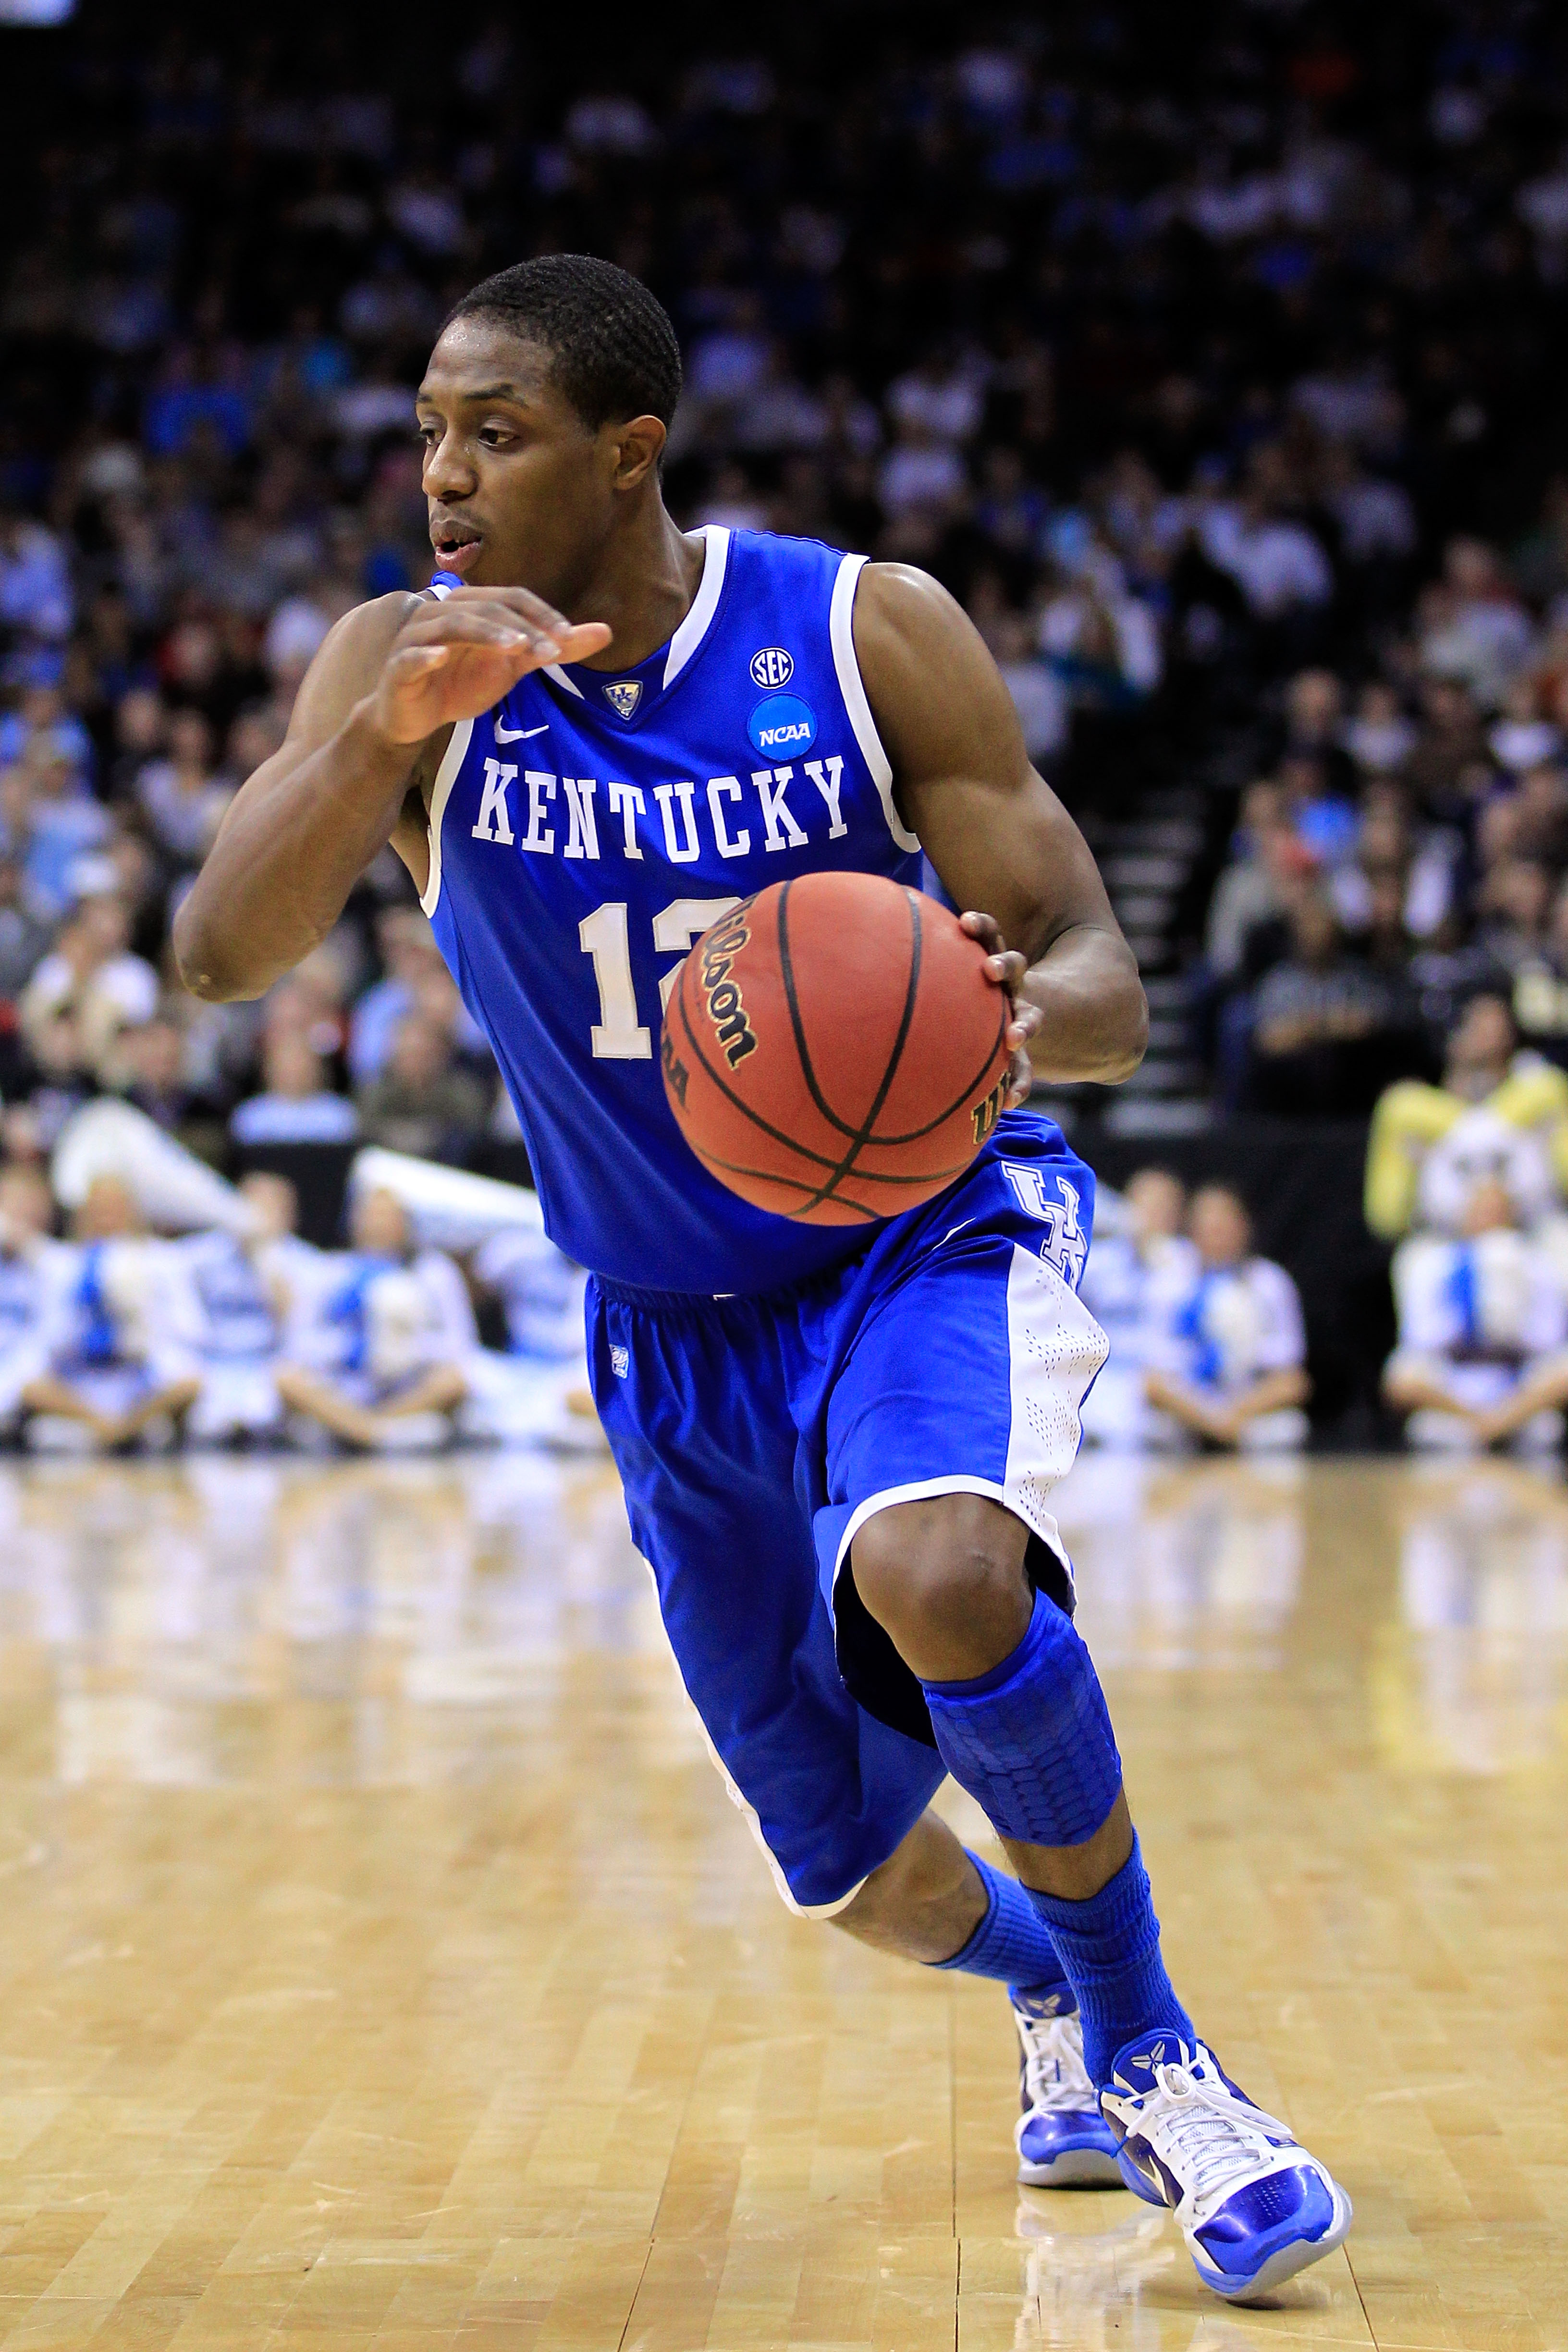 NEWARK, NJ - MARCH 27:  Brandon Knight #12 of the Kentucky Wildcats dribbles the ball against the North Carolina Tar Heels during the east regional final of the 2011 NCAA men's basketball tournament at Prudential Center on March 27, 2011 in Newark, New Je